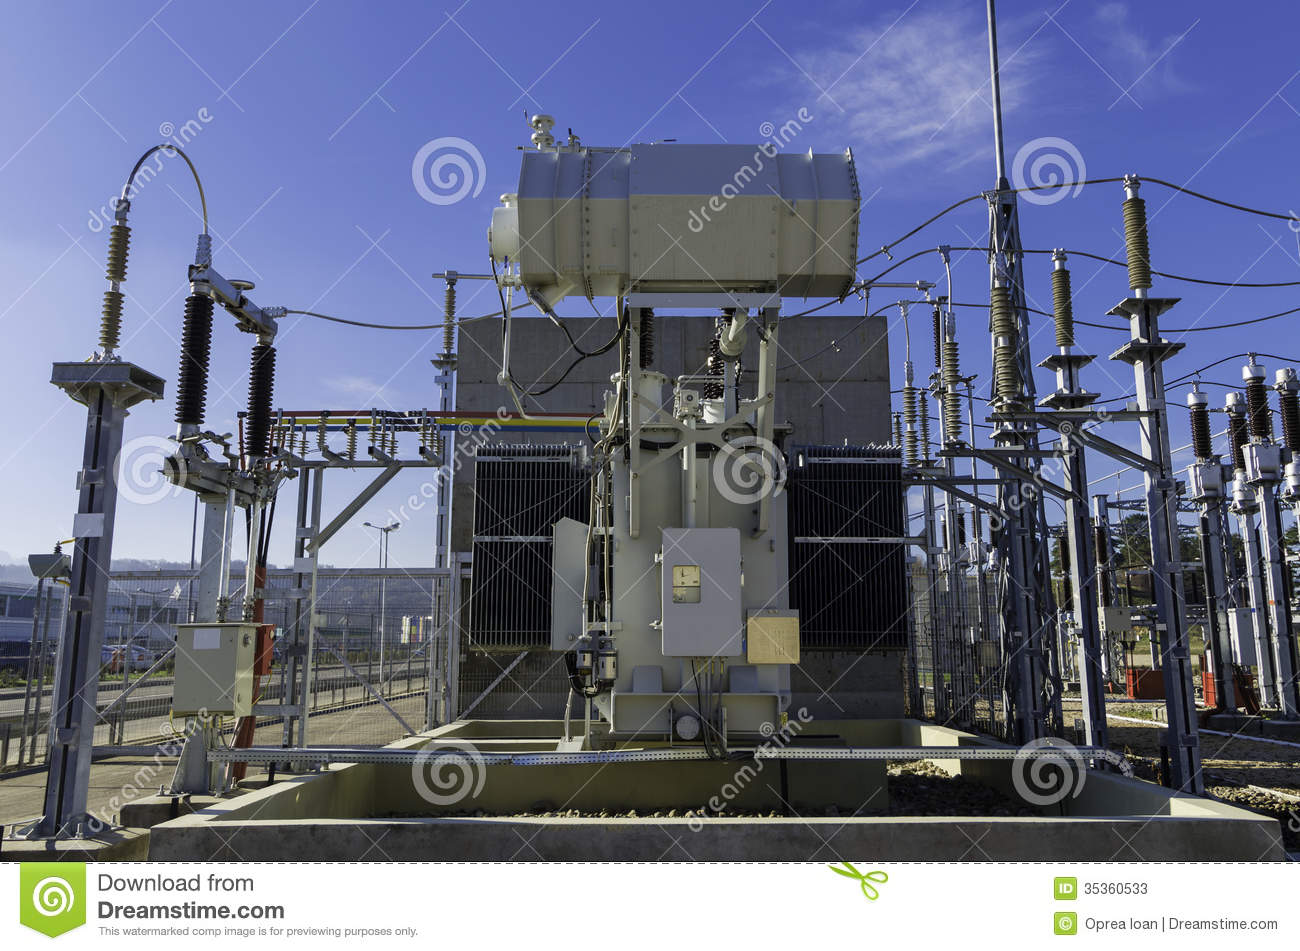 Low Voltage Electrician : Electrical power transformer stock image